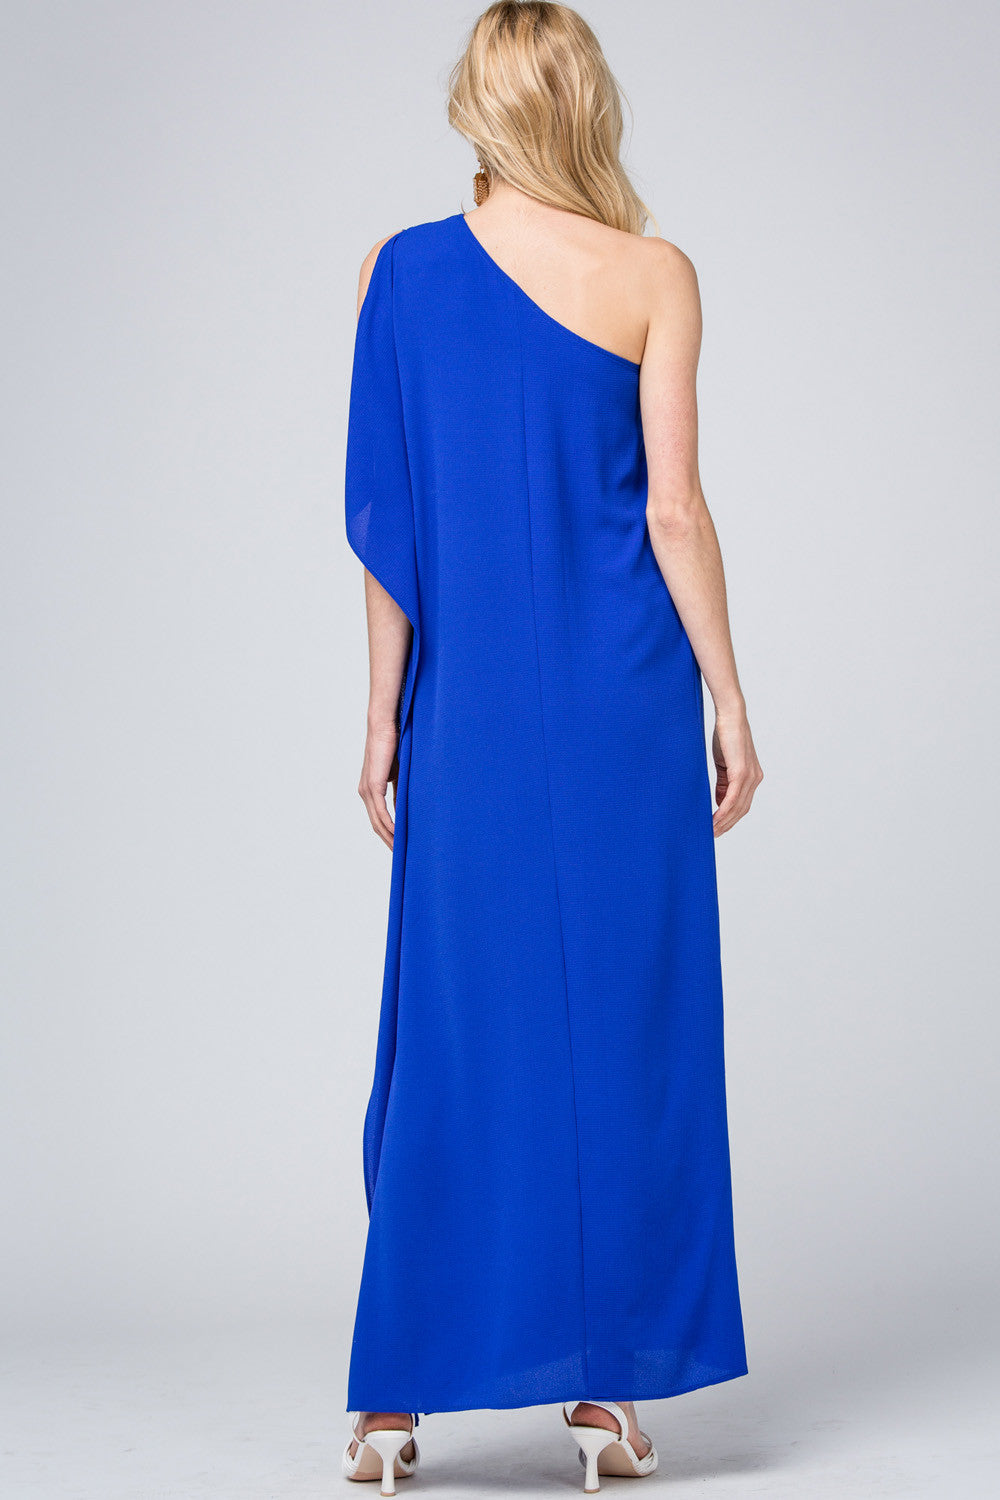 LAST CALL SIZE L | One Shoulder Maxi Dress in Royal Blue